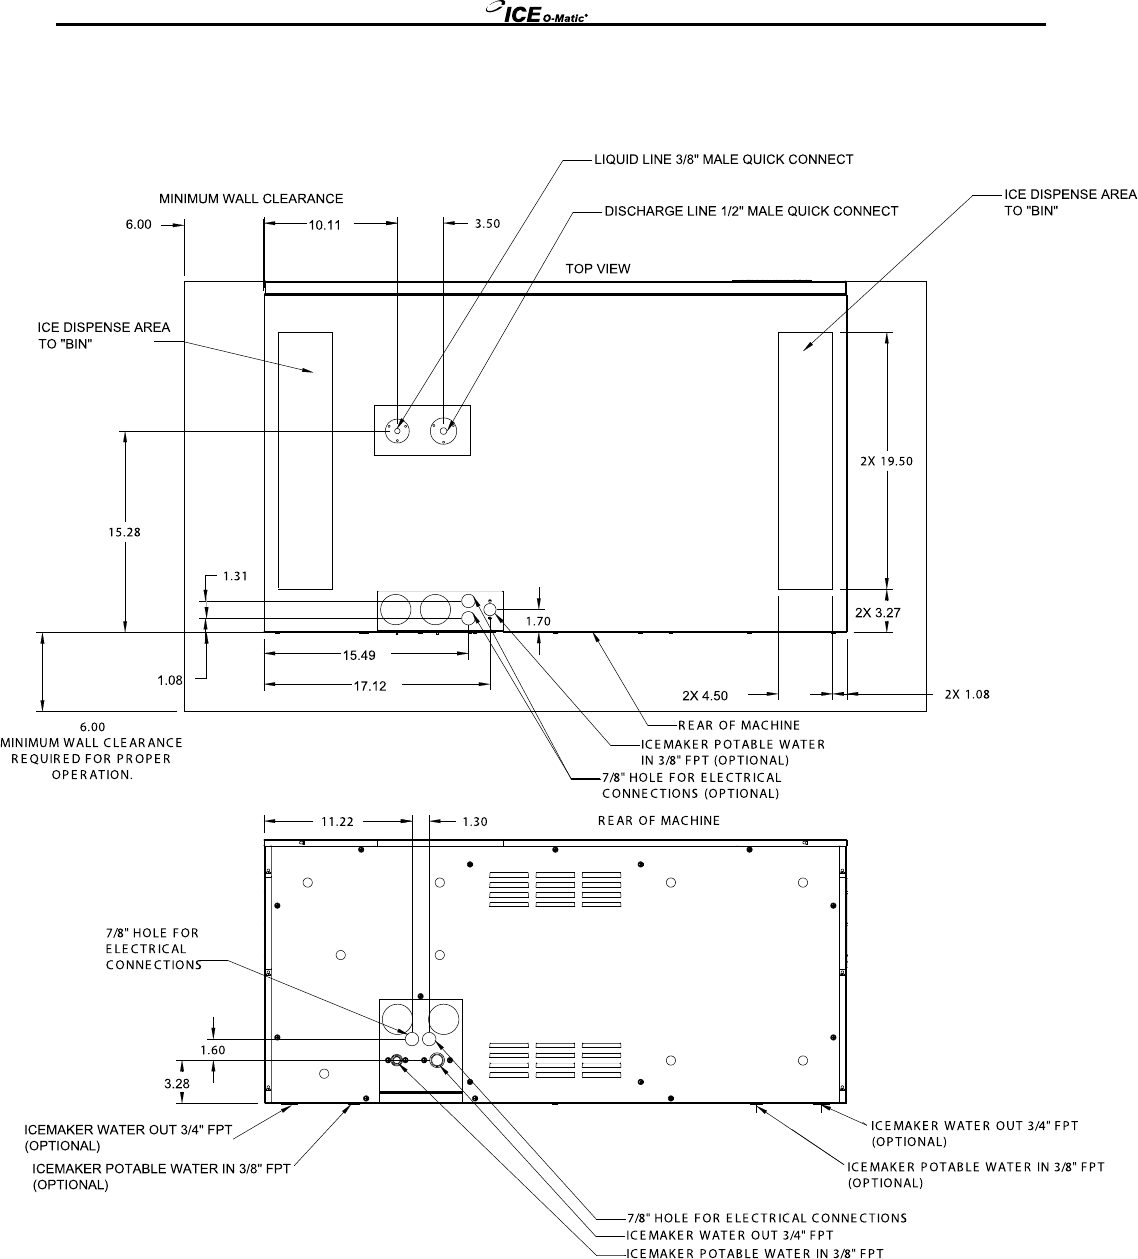 ice o matic wiring diagram wiring diagram valice o matic wiring diagram wiring diagram expert ice o matic ice250 through ice2100 series users